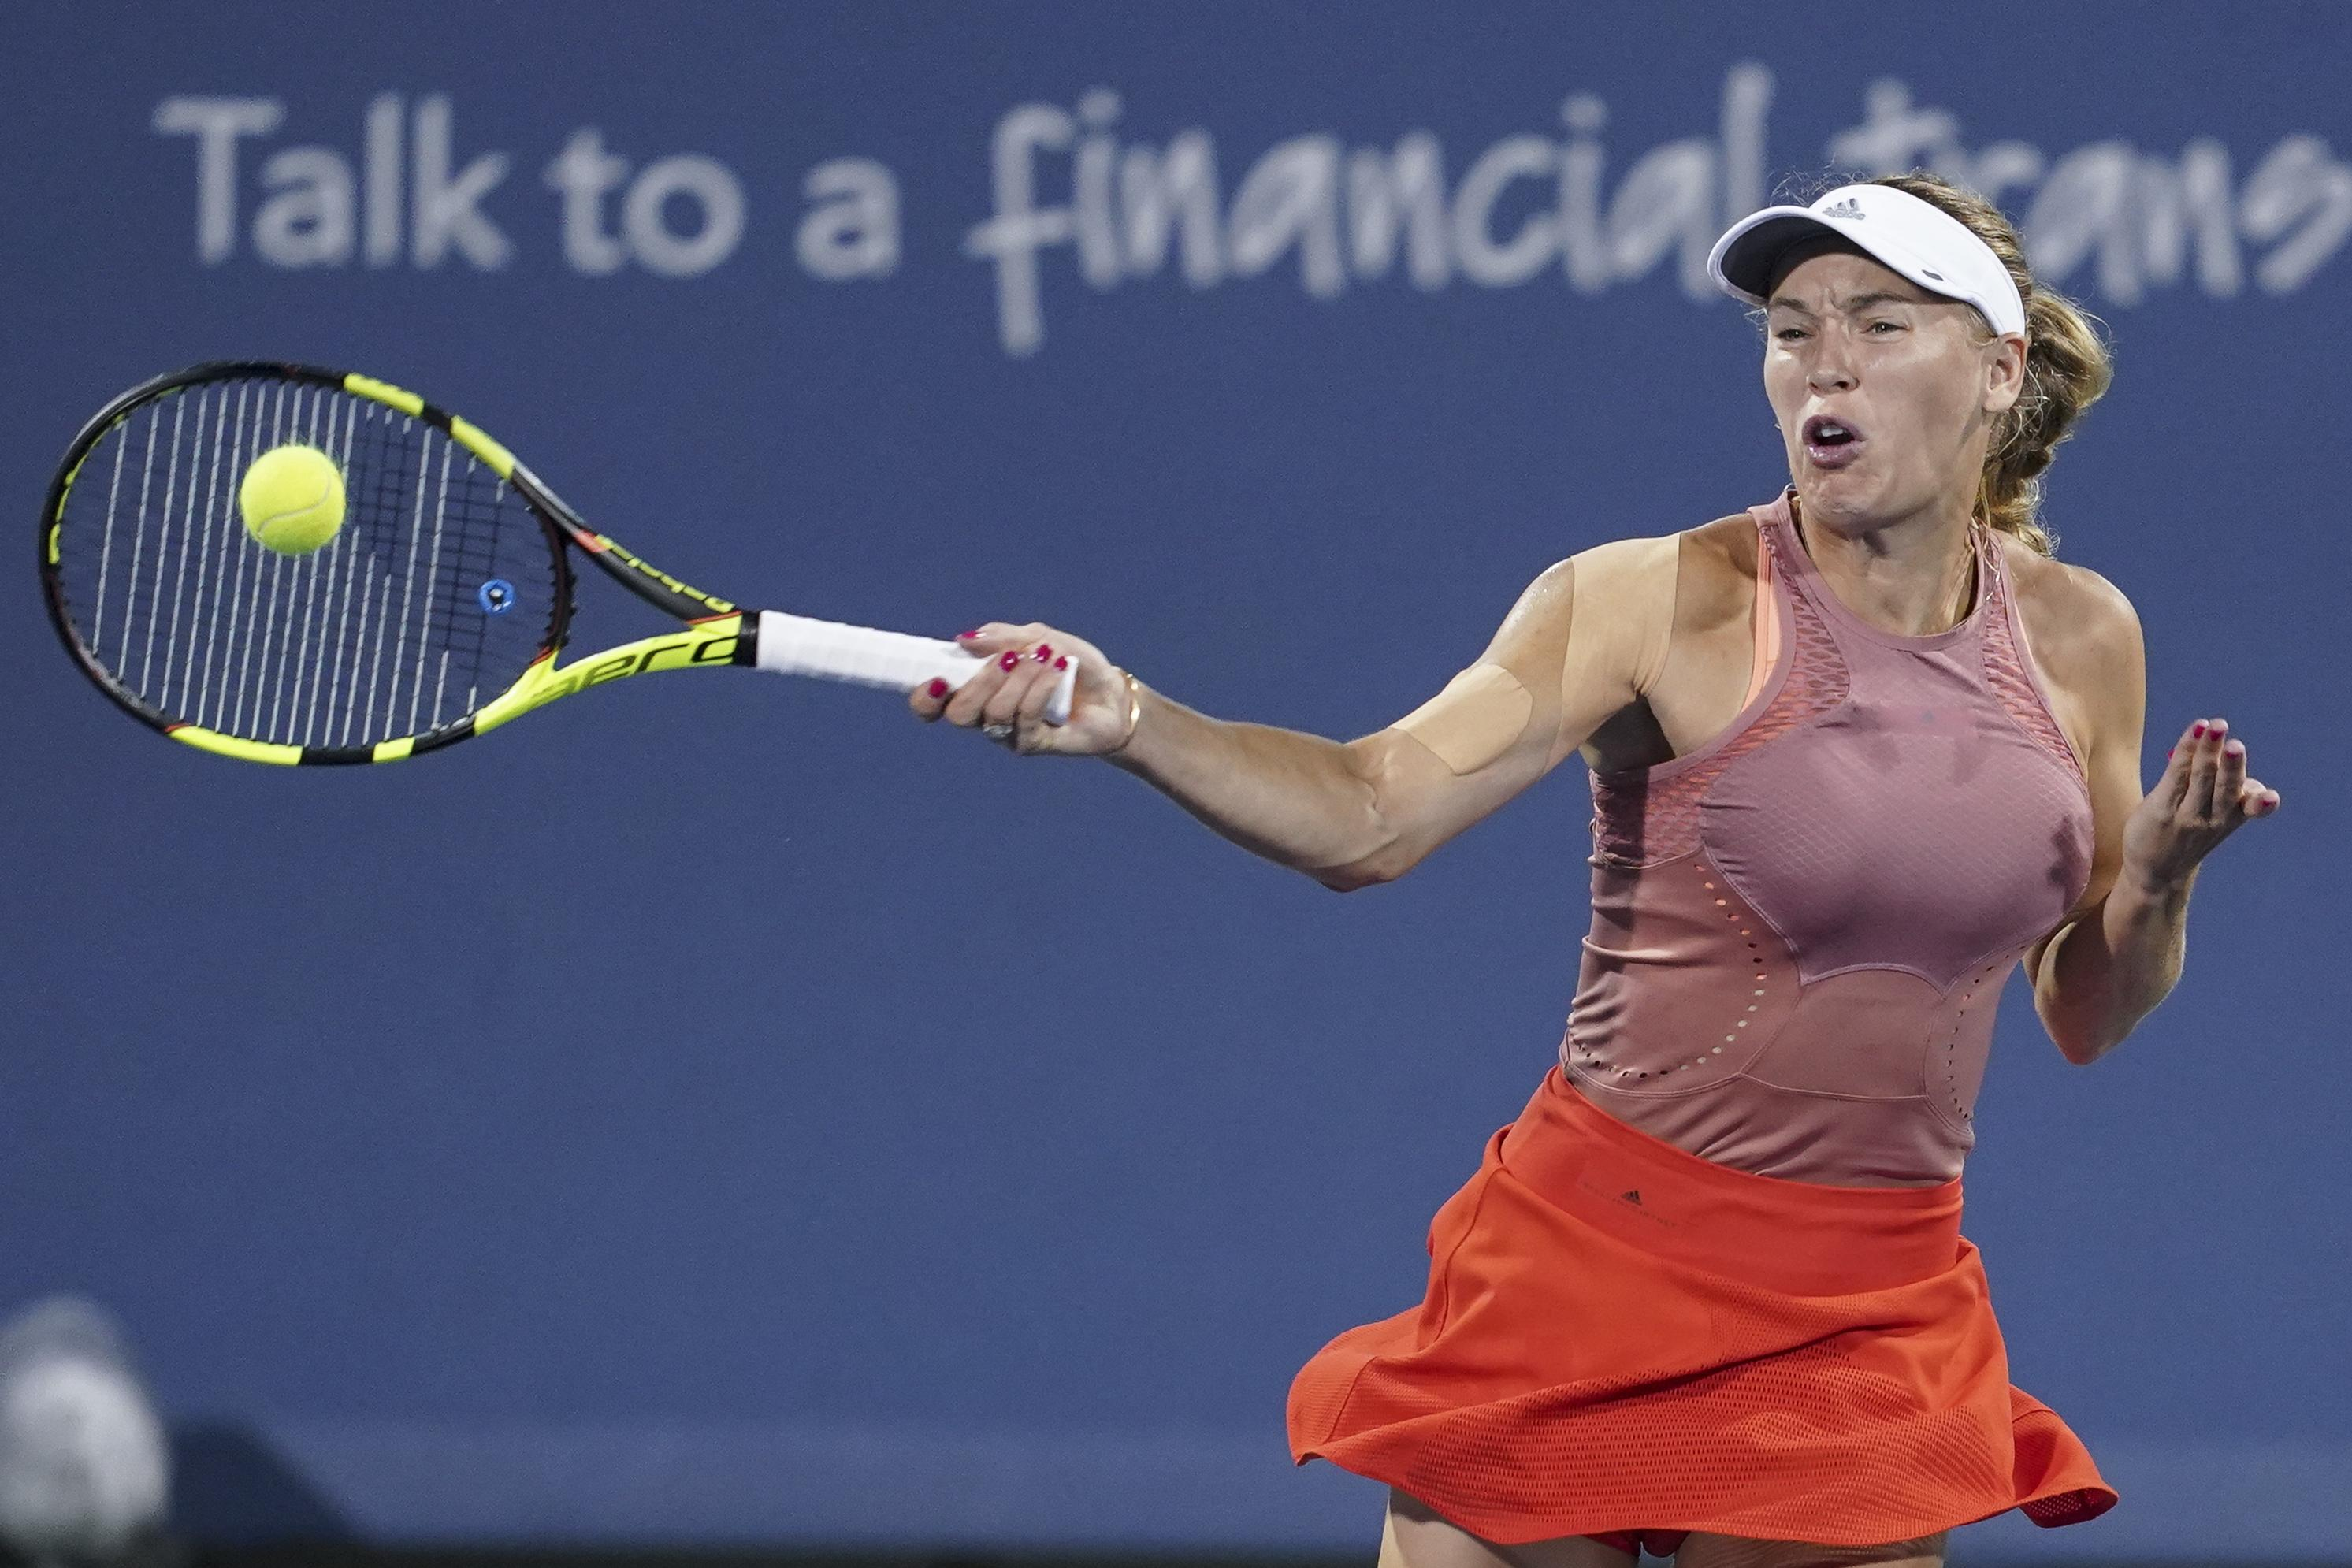 Wozniacki is the world No 2 and current Australian Open holder